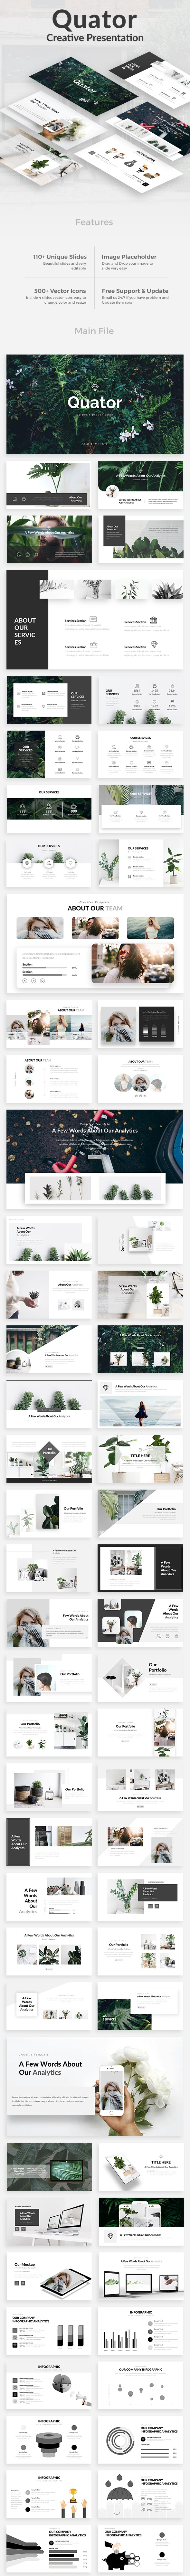 Quator Creative Google Slide Template